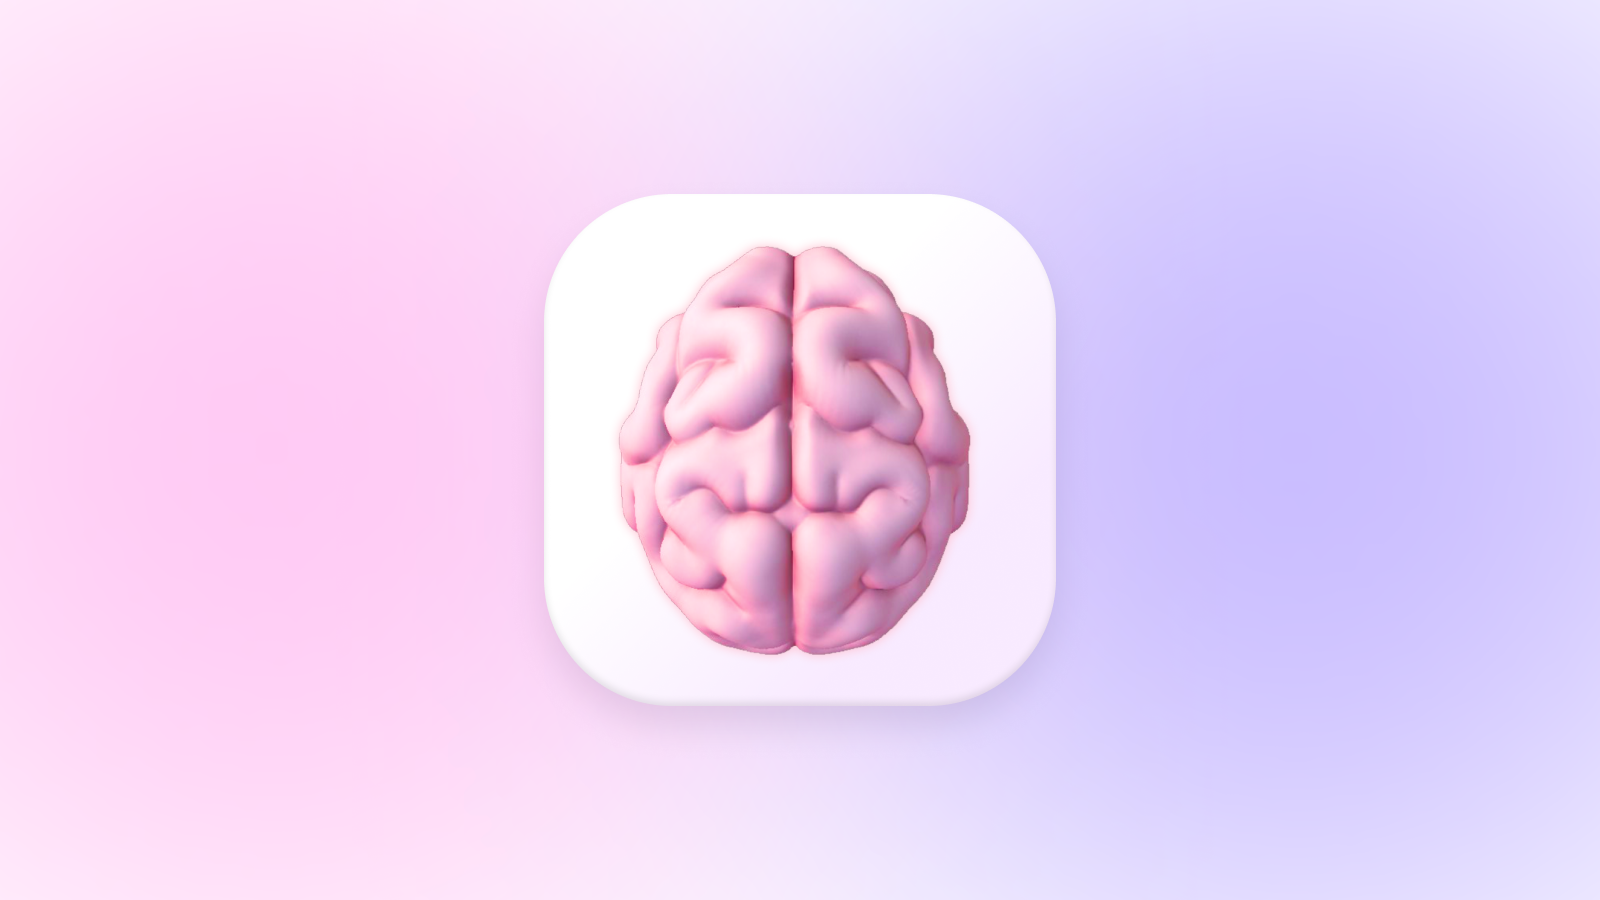 Design psychologies from practical apps